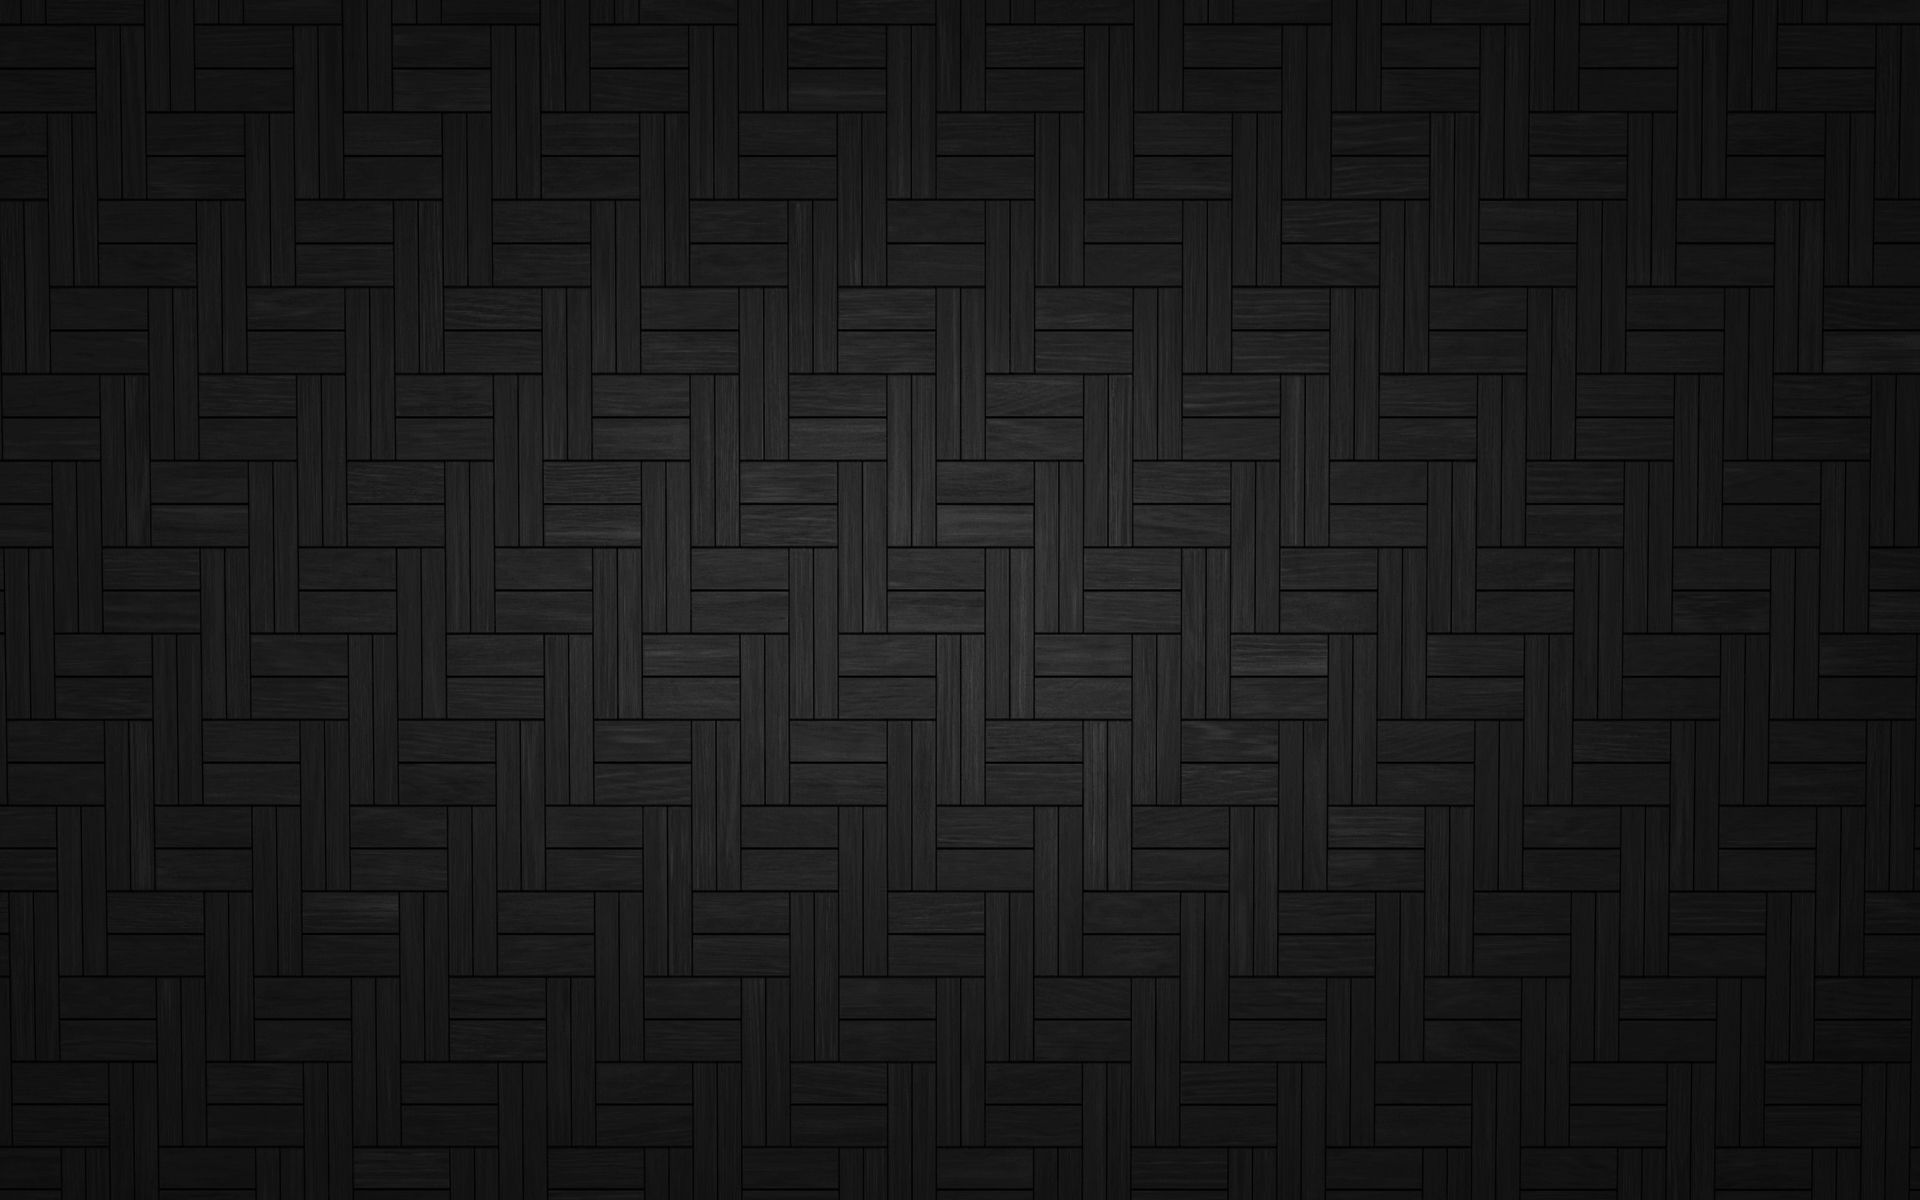 Amazing black hd wallpaper 12